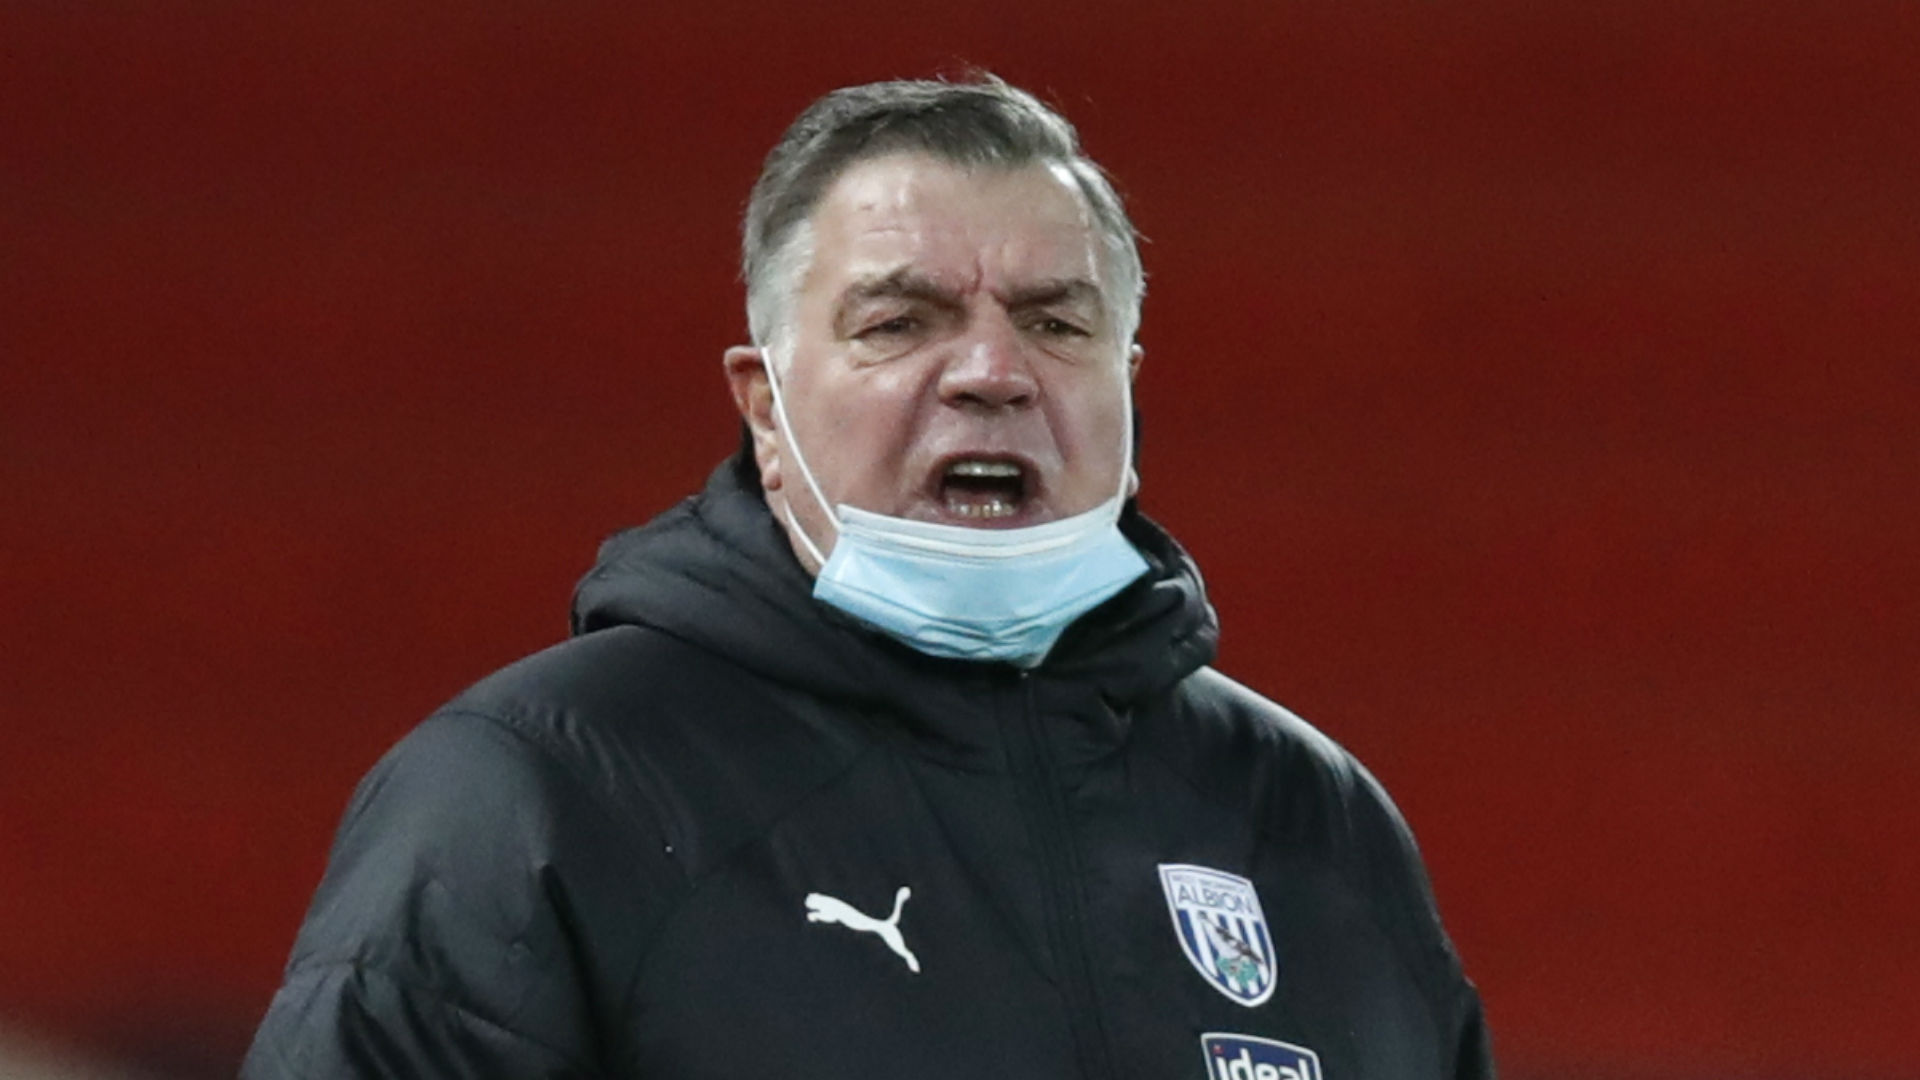 West Brom boss Allardyce calls for Premier League break to combat rise in COVID-19 cases